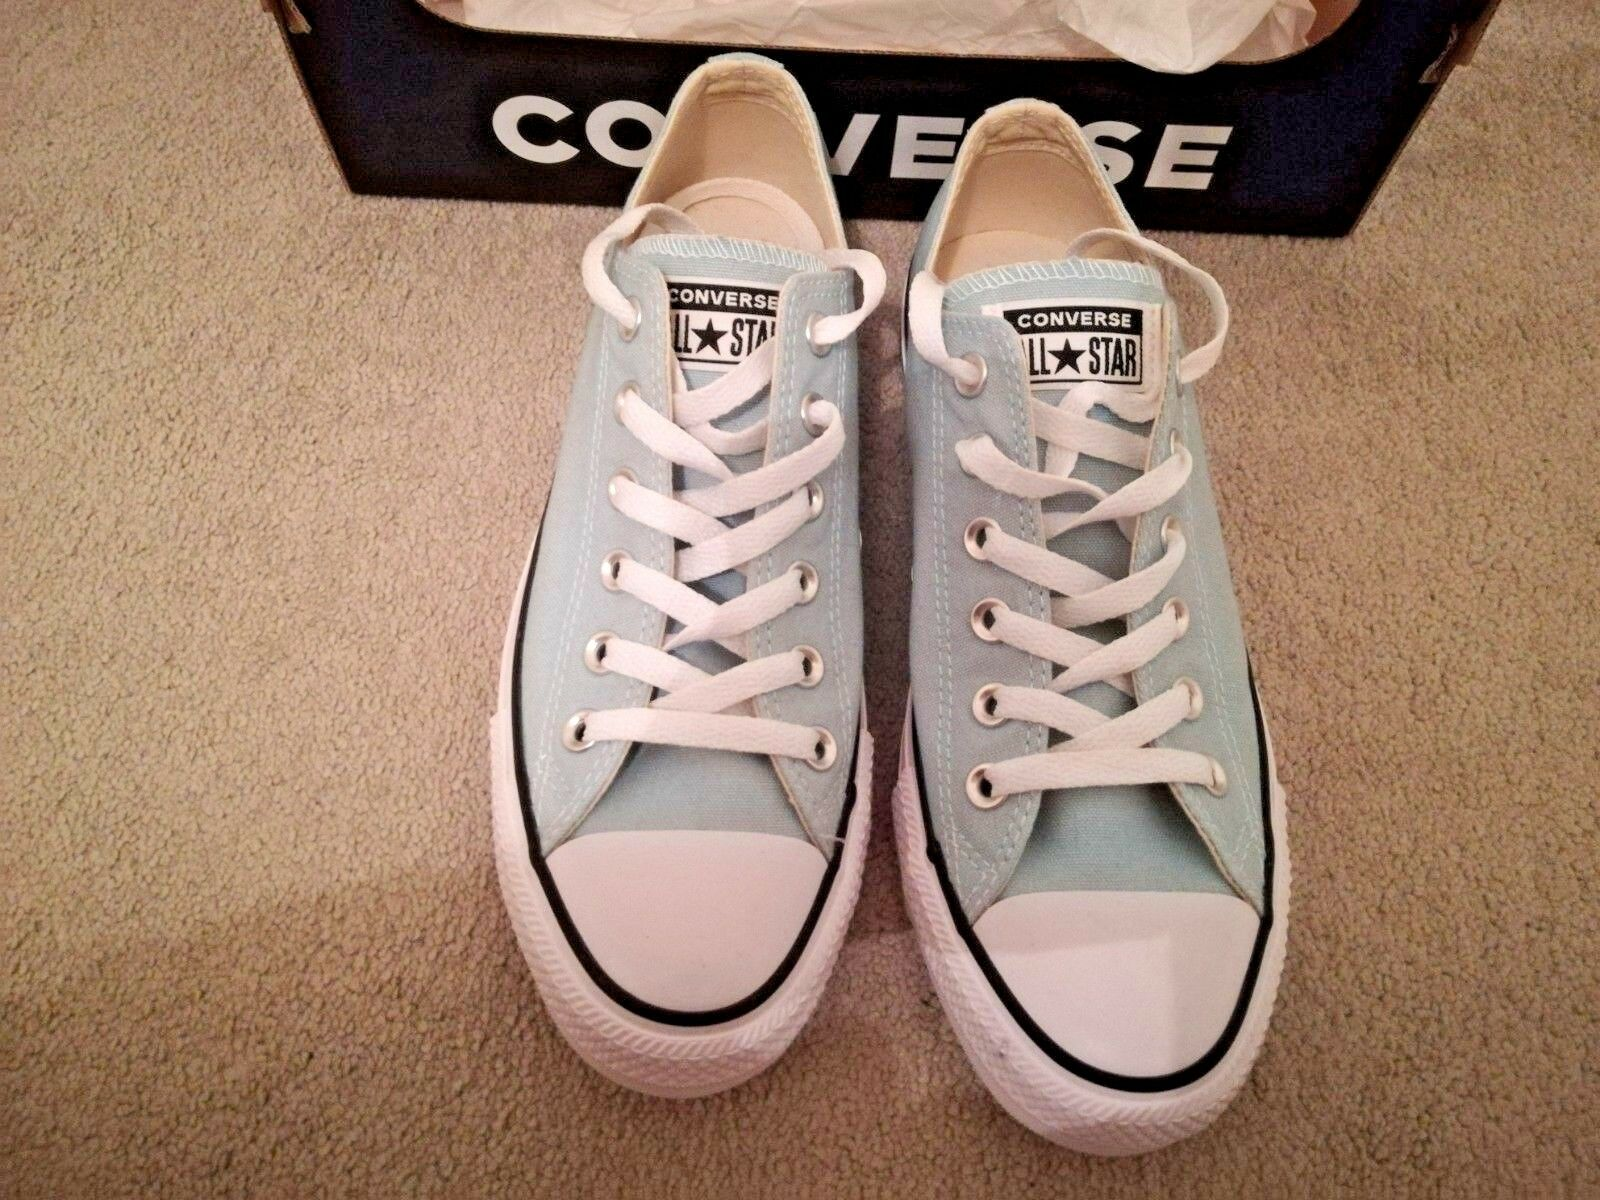 Converse Converse Converse Chuck Taylor All Star Classic OX Size 7 - BRAND NEW 160460C Ocean Bliss b98870